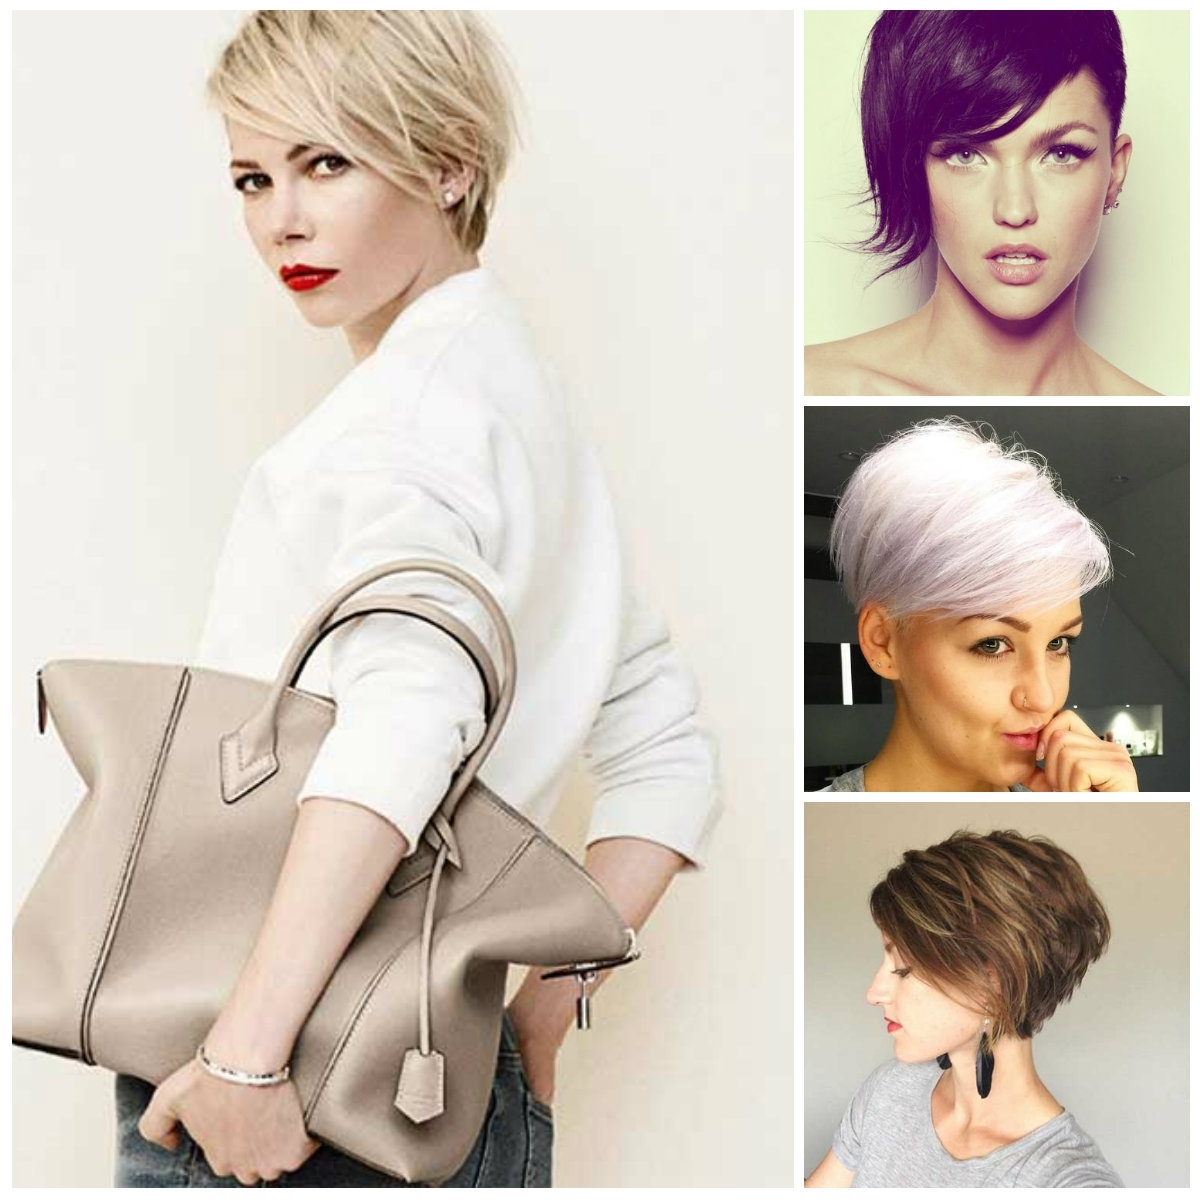 Long Pixie Haircuts | 2017 Haircuts, Hairstyles And Hair Colors Regarding 2018 Long Pixie Hairstyles For Women (View 9 of 15)